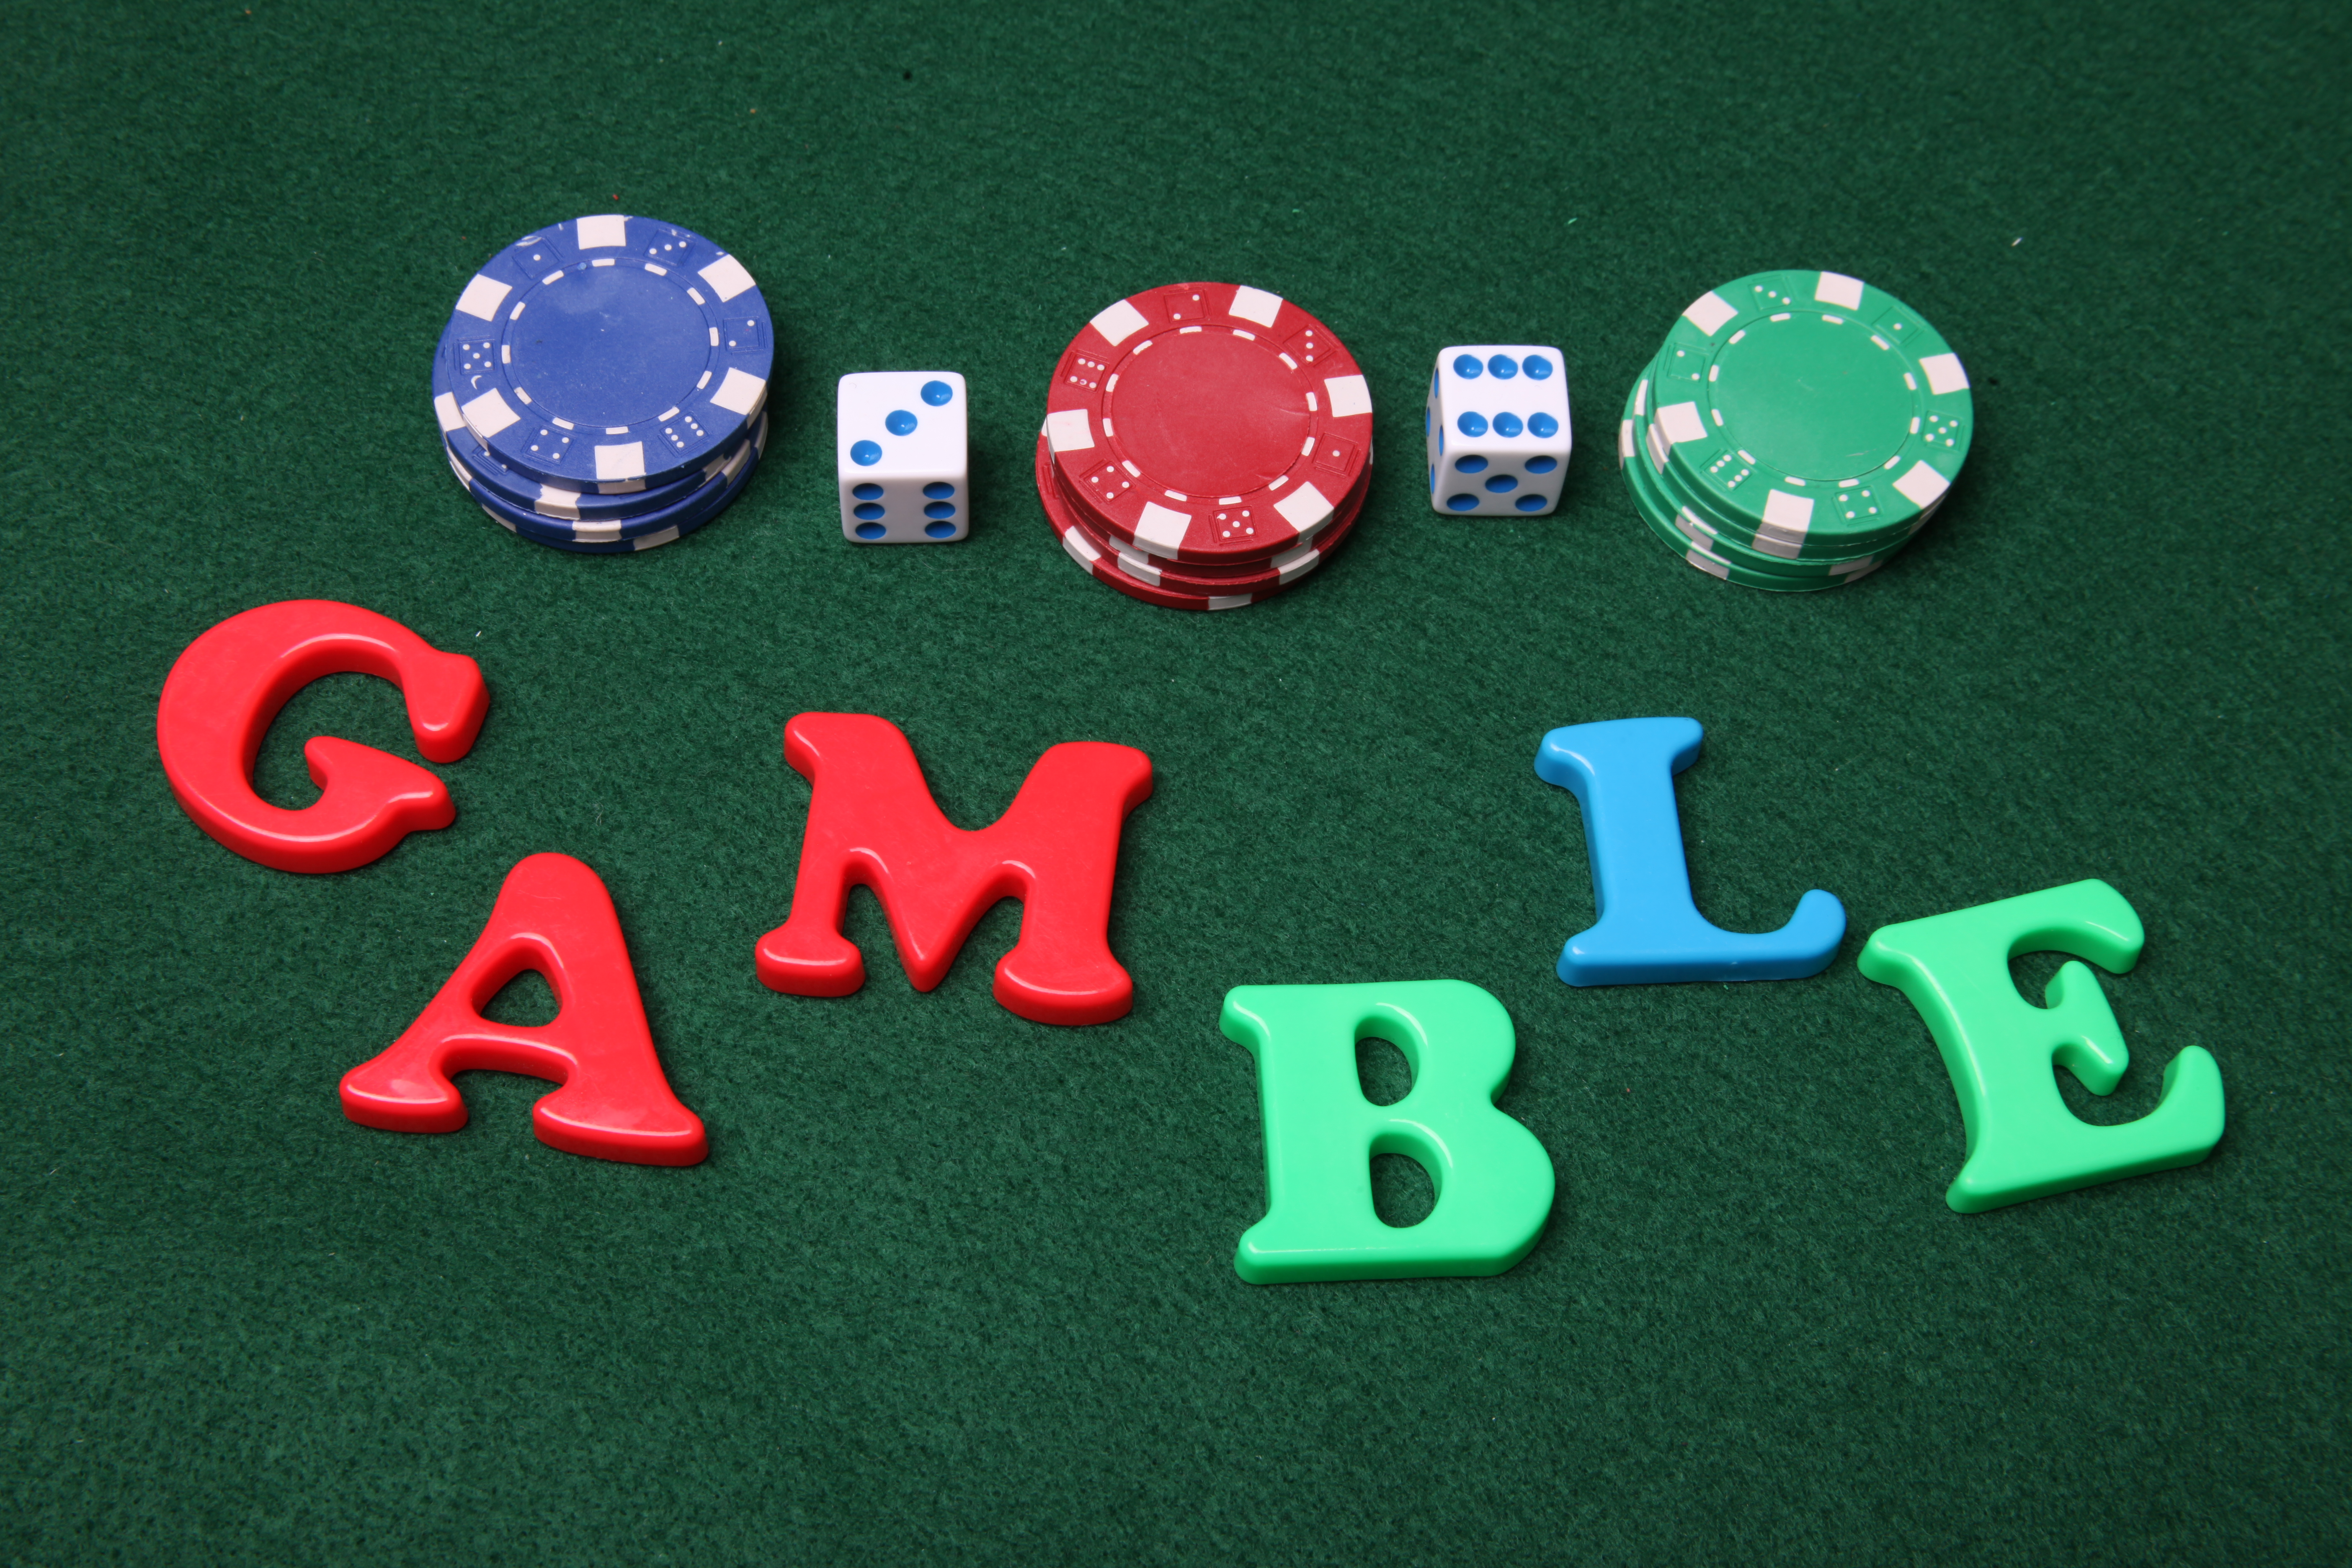 Gamble letters, Green, Letters, Table, Gamble, HQ Photo